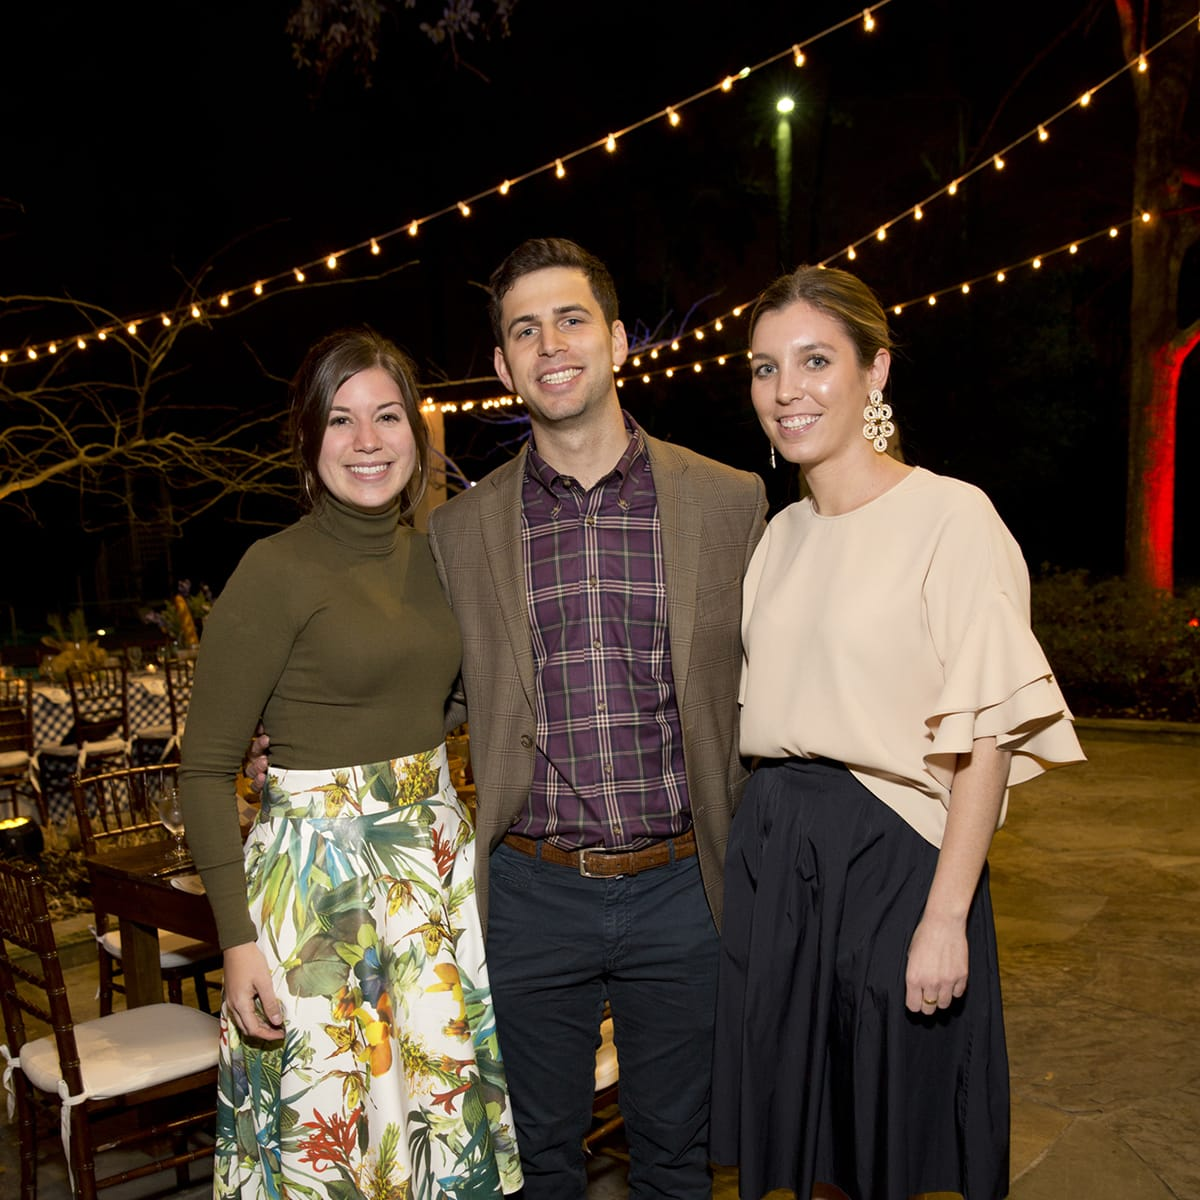 Houston, Memorial Park Conservancy Picnic for the Park, February 2018, Maddox Lamme, Ben Atnipp, Alexa White